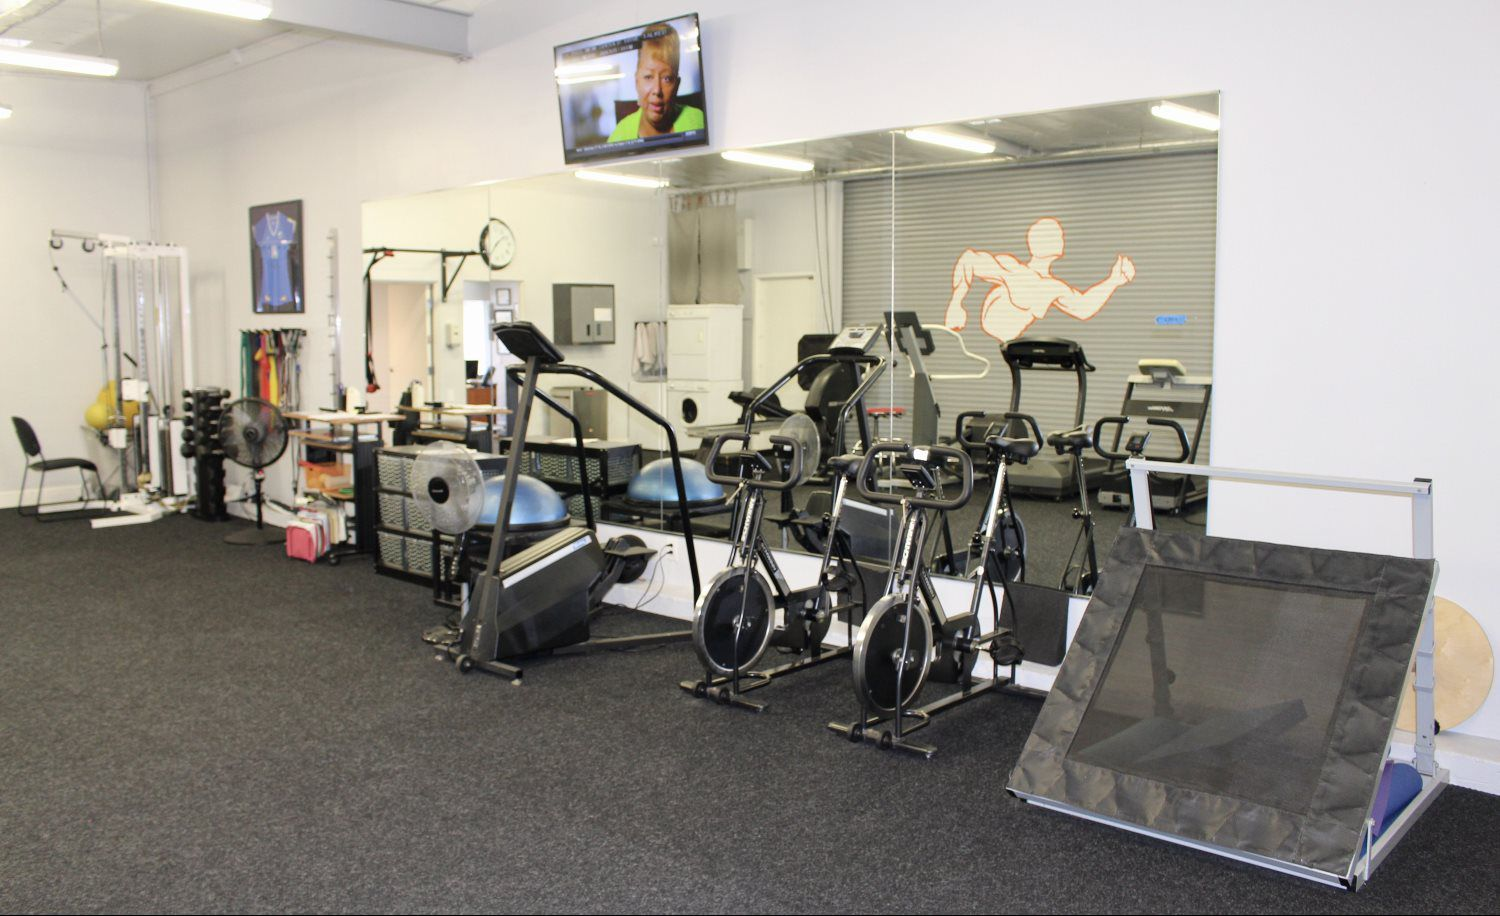 Physical therapy and rehabilitation center facility in redondo beach